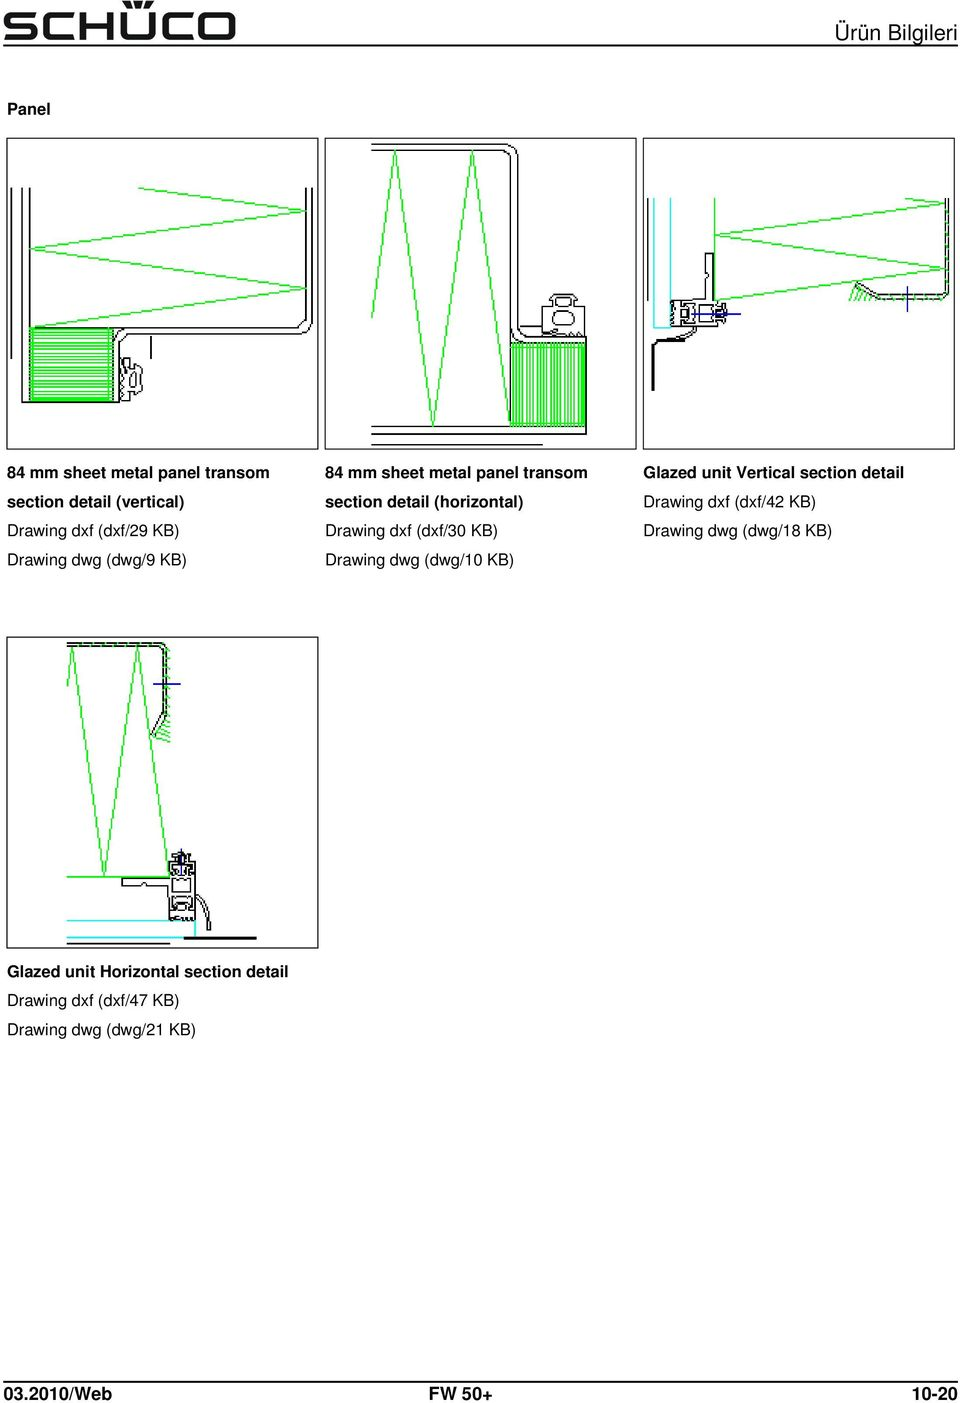 dwg (dwg/10 KB) Glazed unit Vertical section detail Drawing dxf (dxf/42 KB) Drawing dwg (dwg/18 KB)